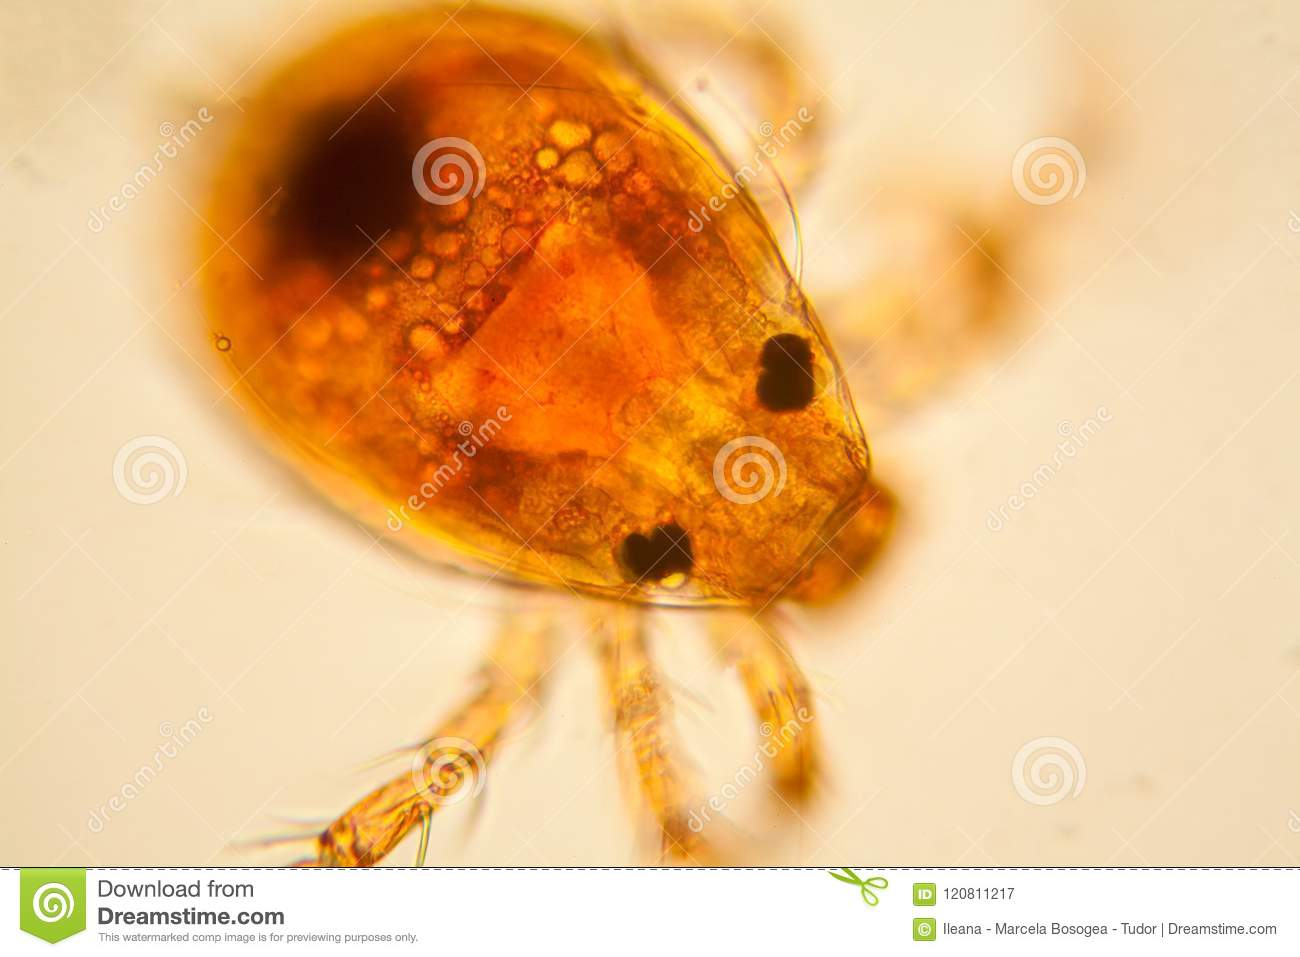 Pond water plankton and algae at the microscope. Pond mite